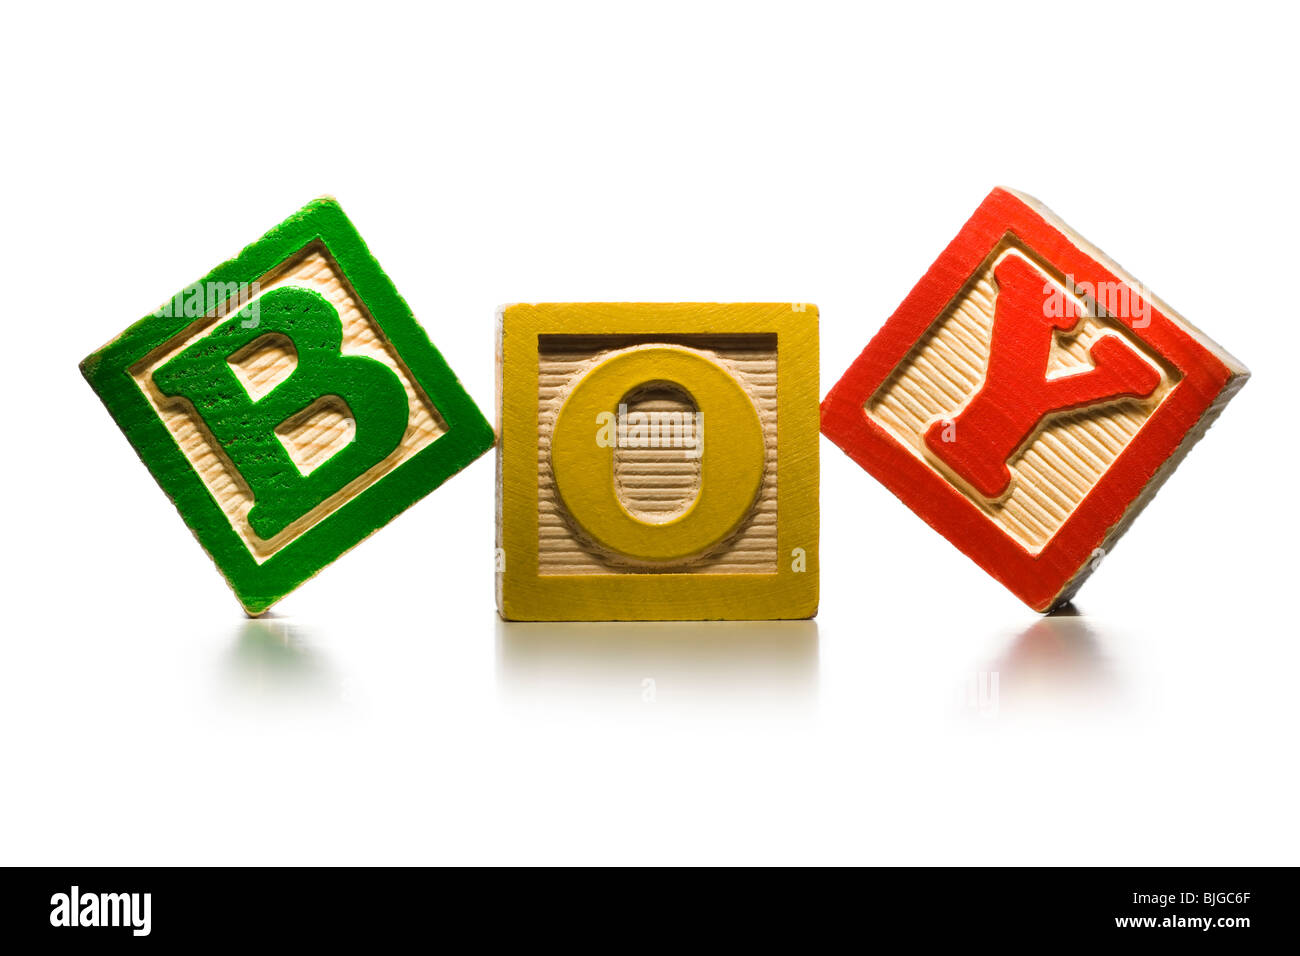 nursery blocks spelling 'boy' - Stock Image